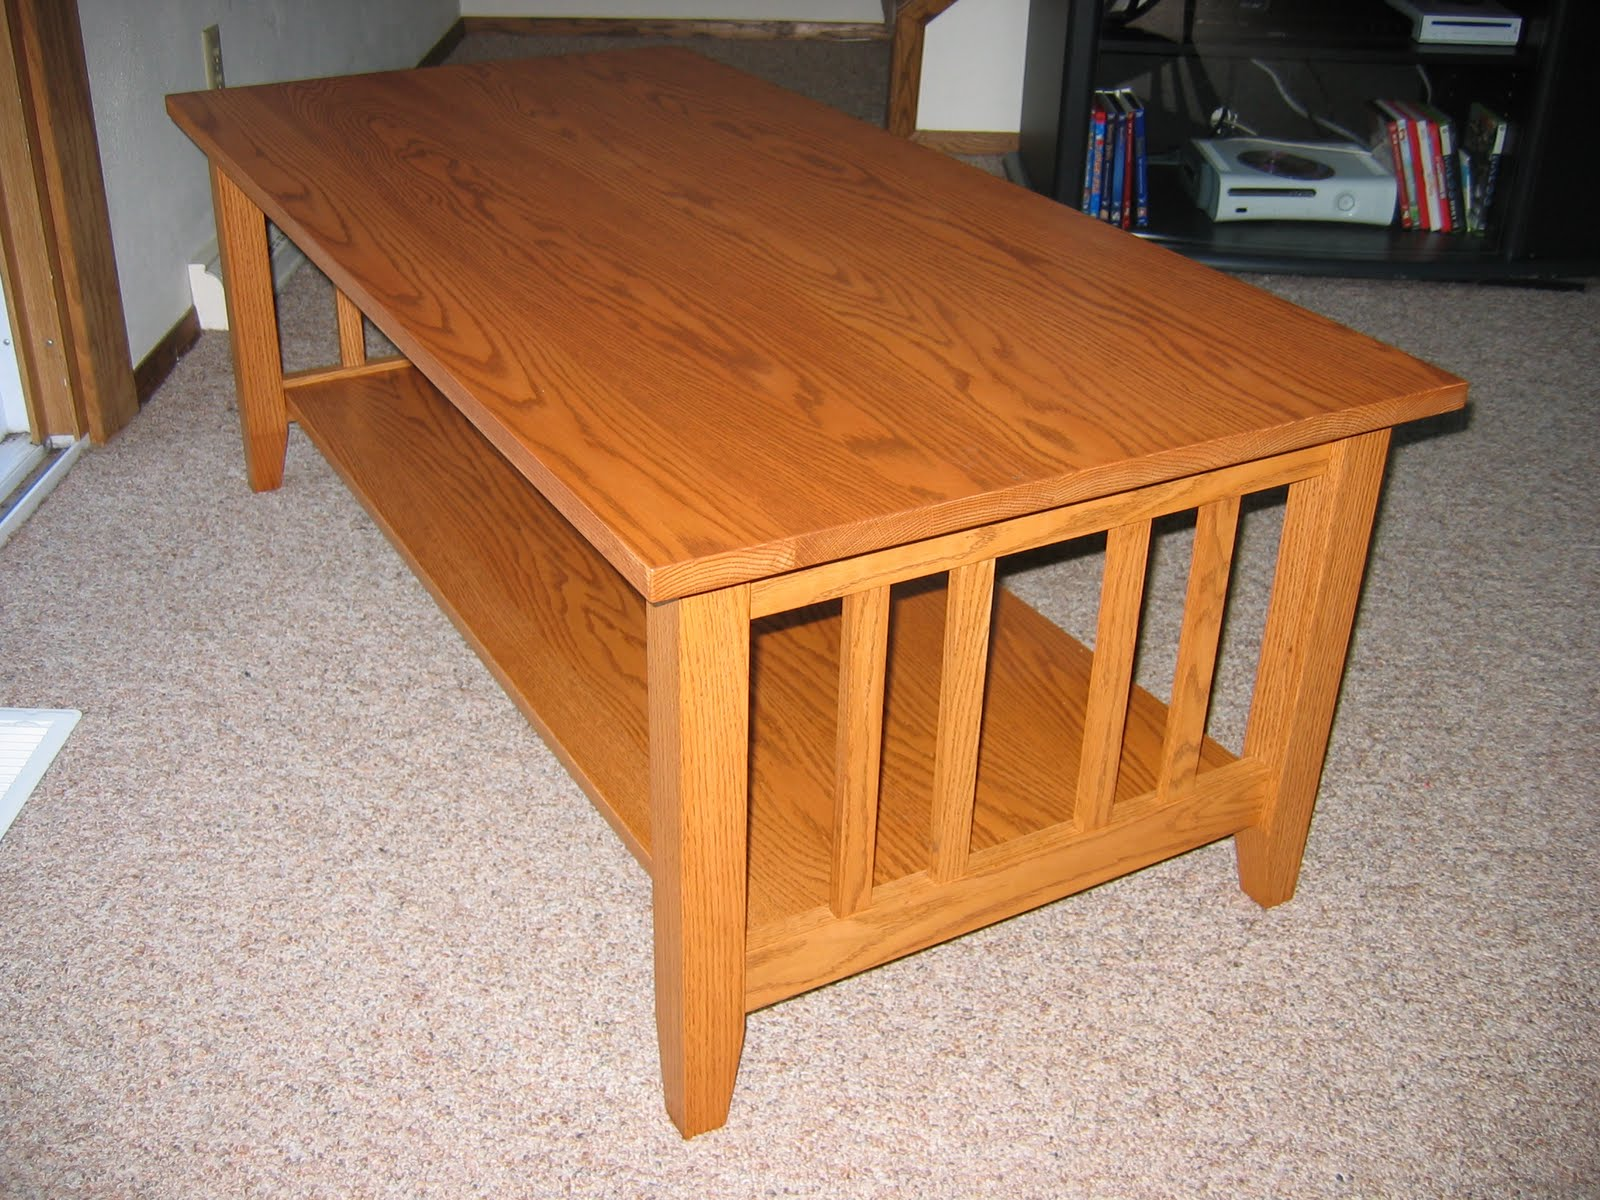 Chris' Project Page: Craftsman Style Coffee Table - Done!